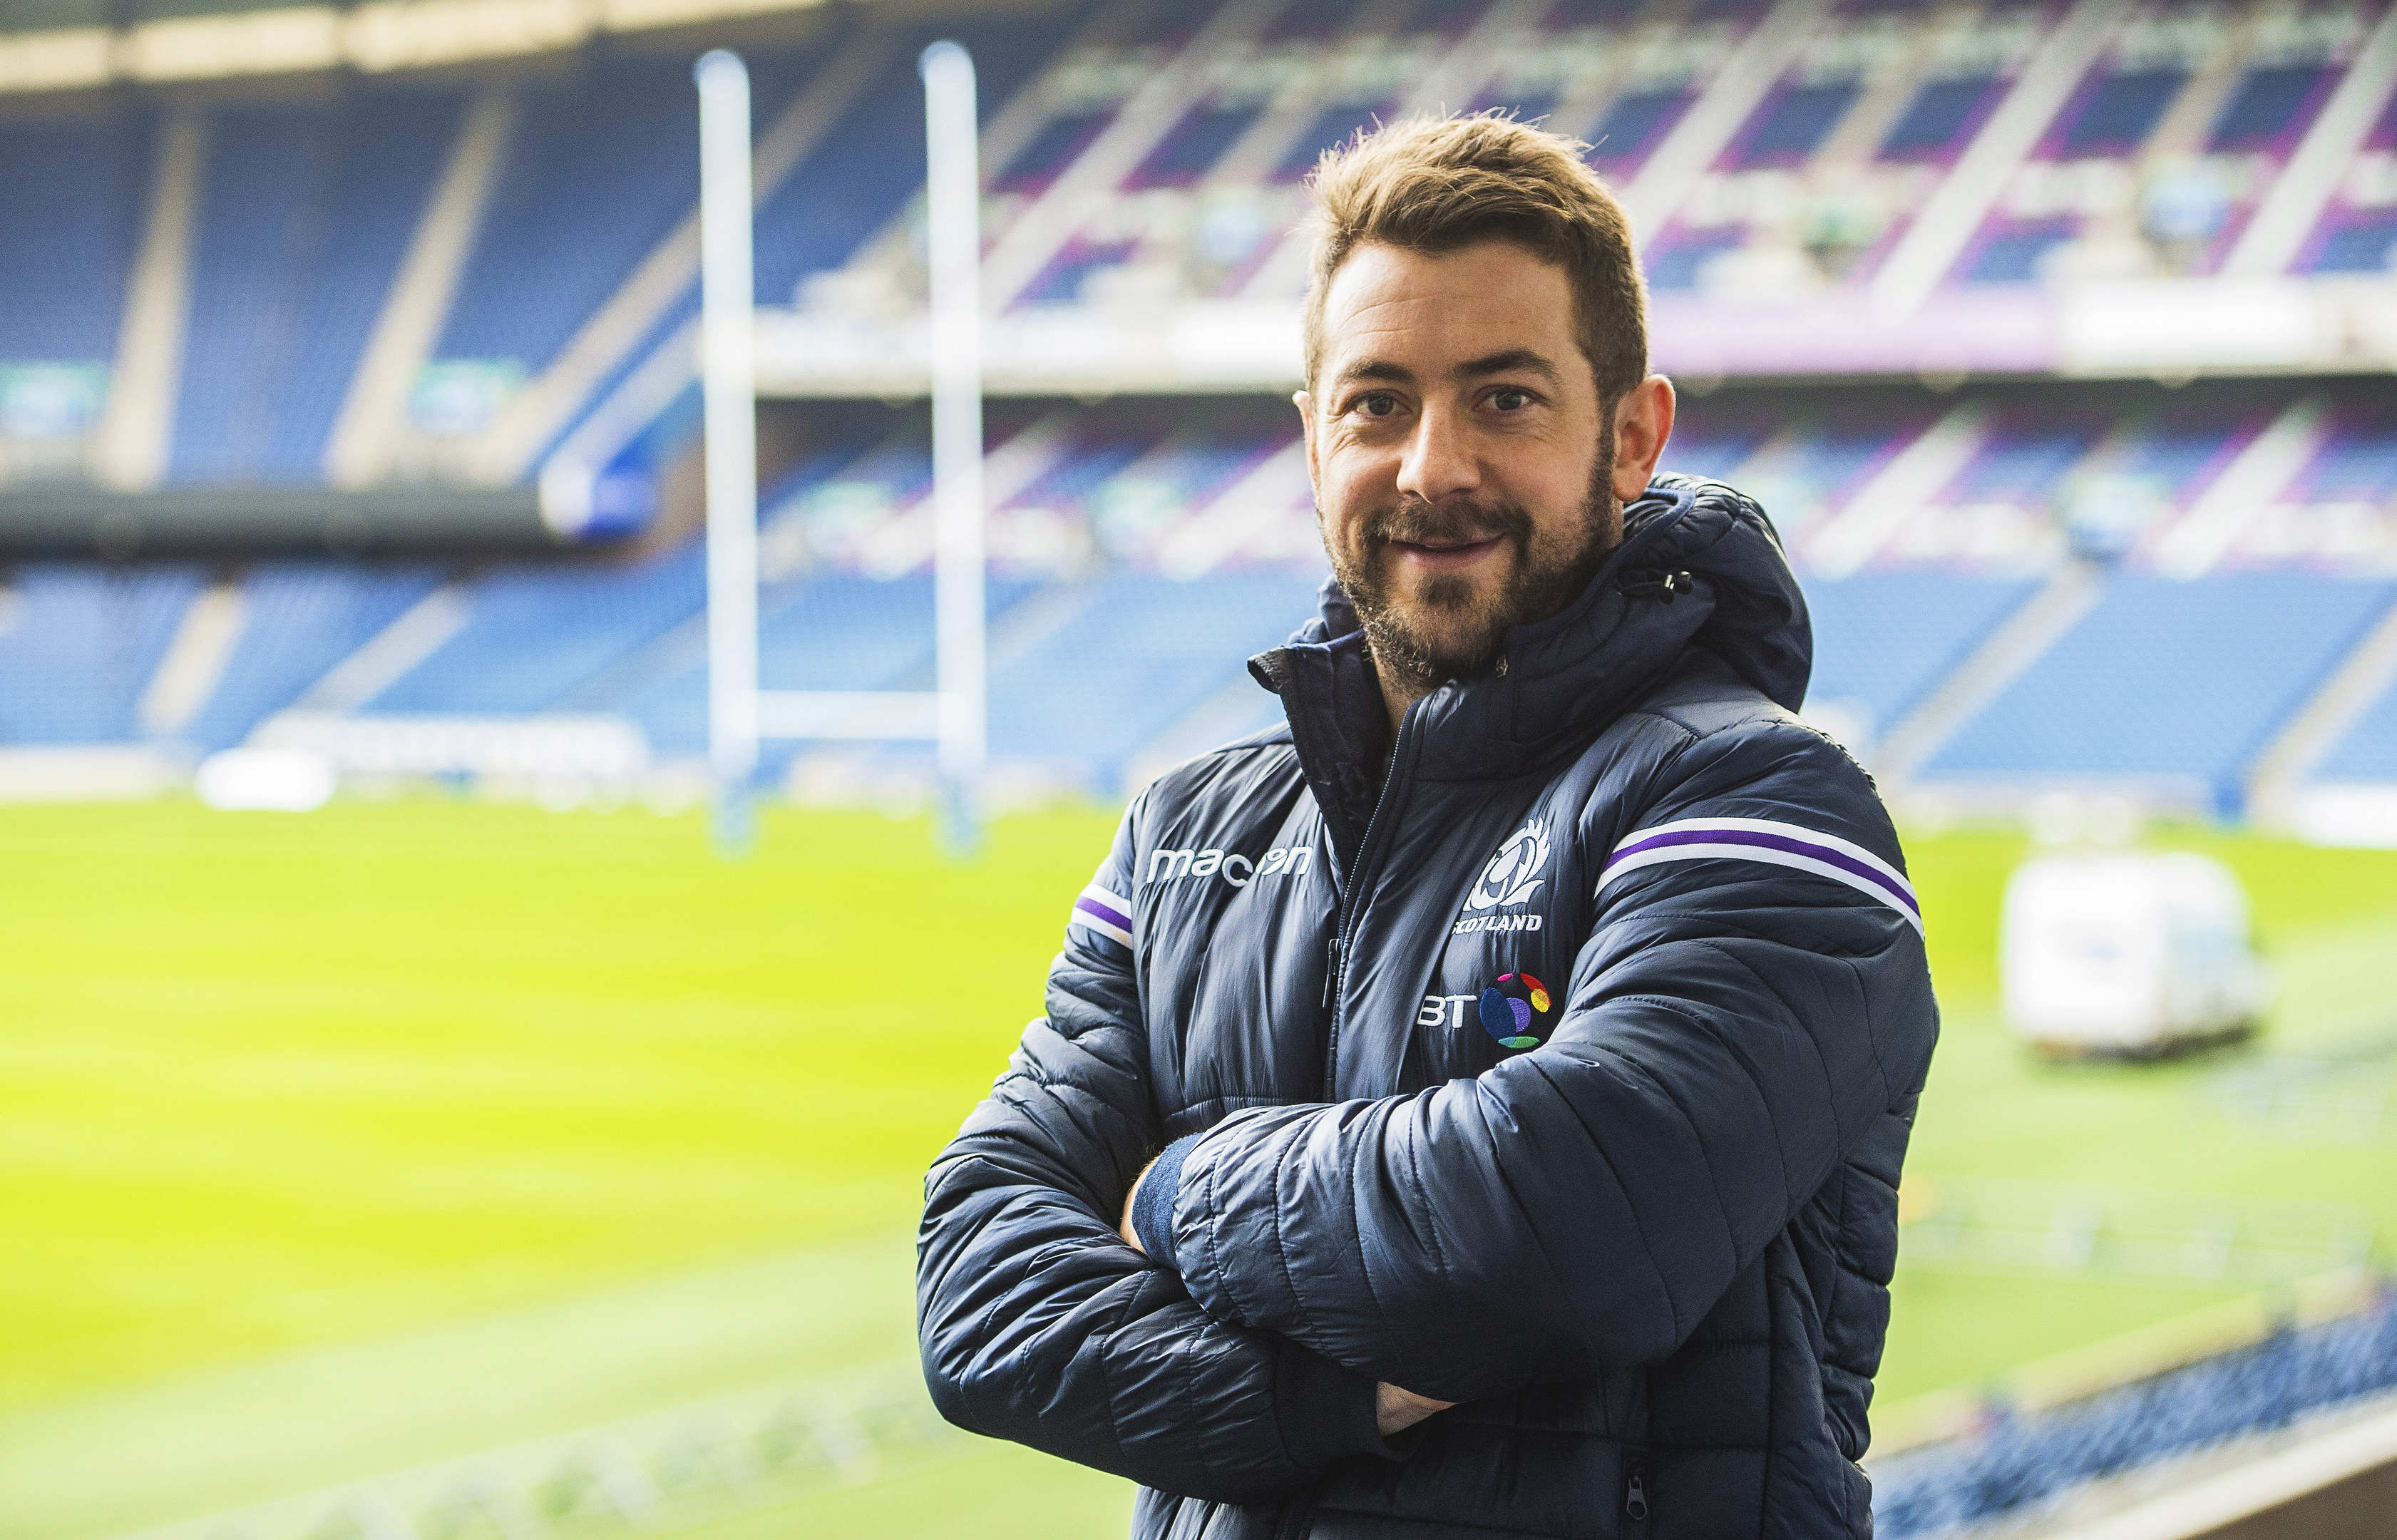 Greig Laidlaw captained Scotland a record 39 times.